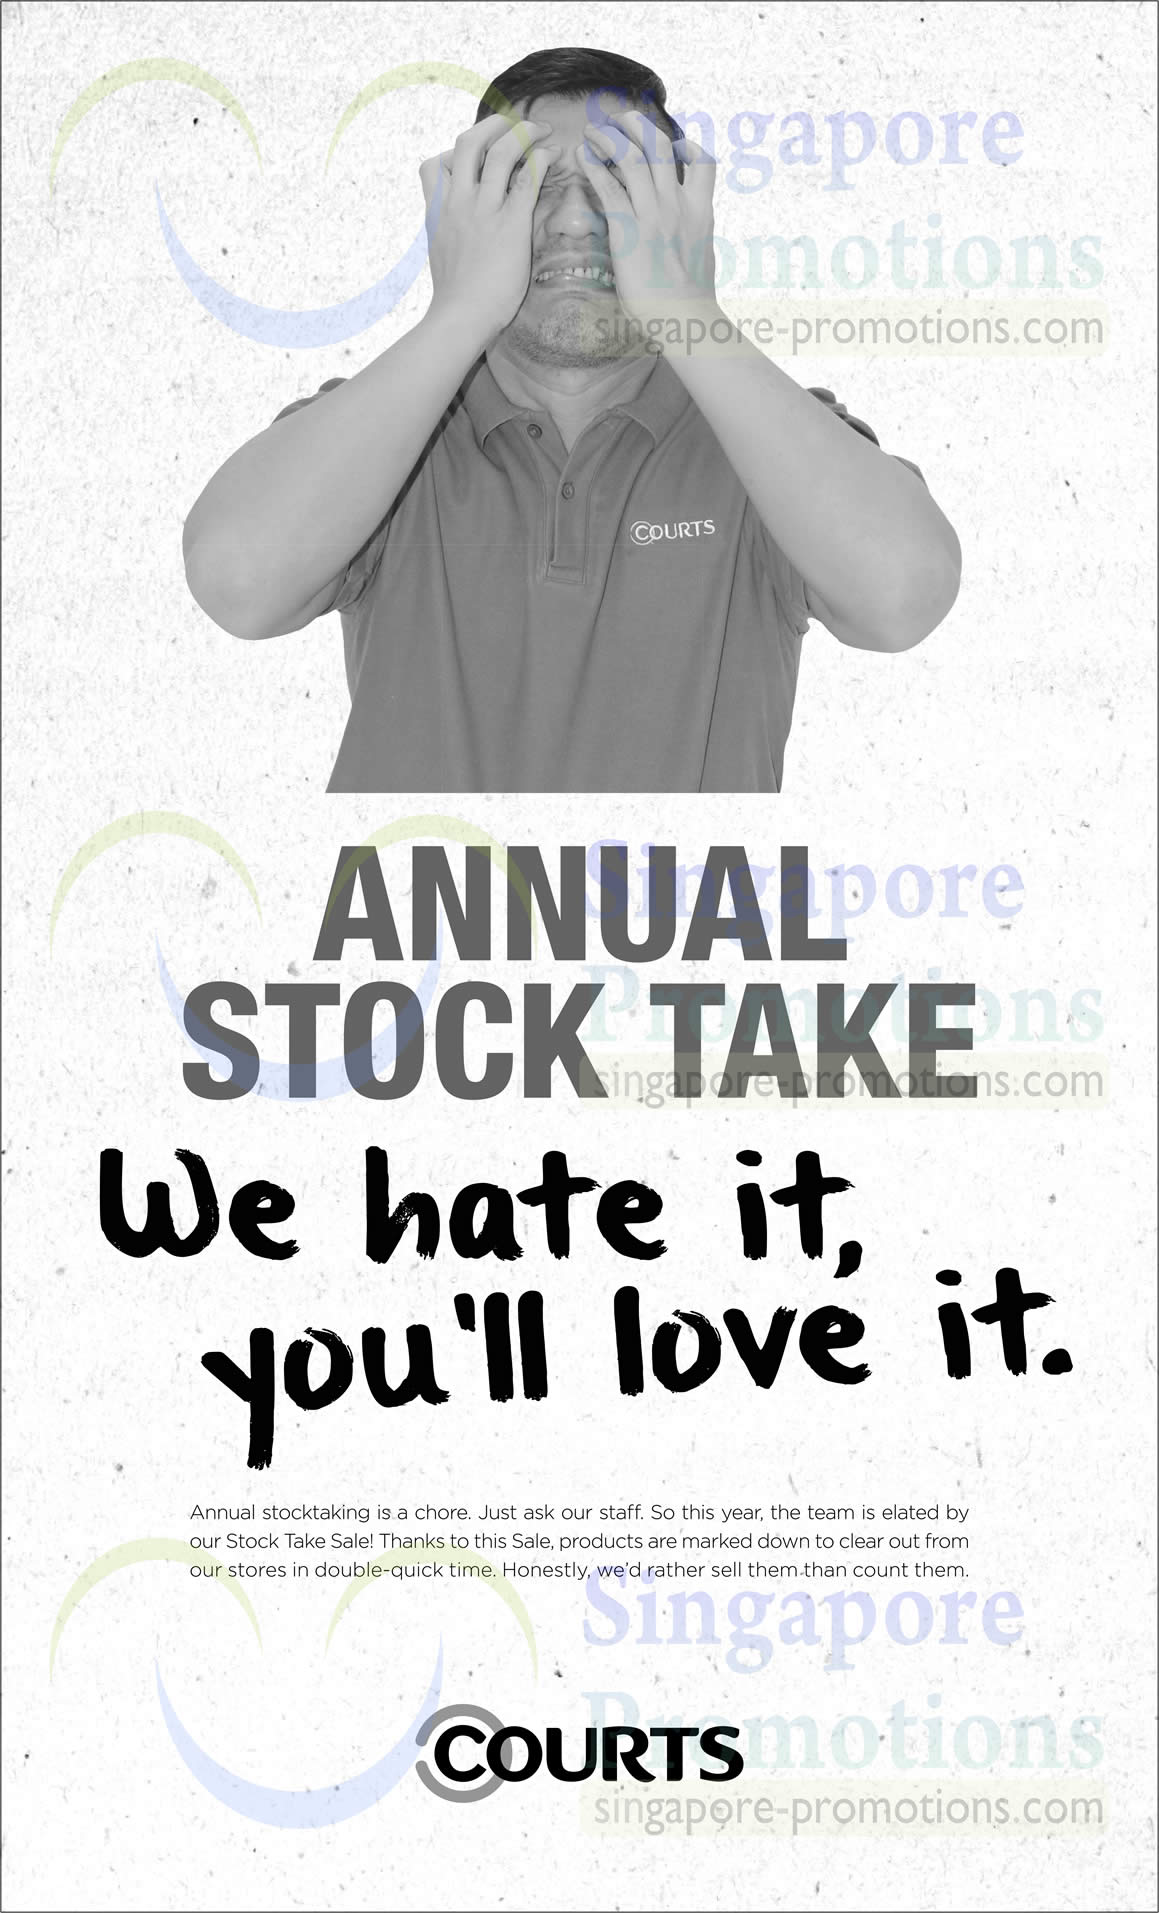 Courts Stock Take Sale